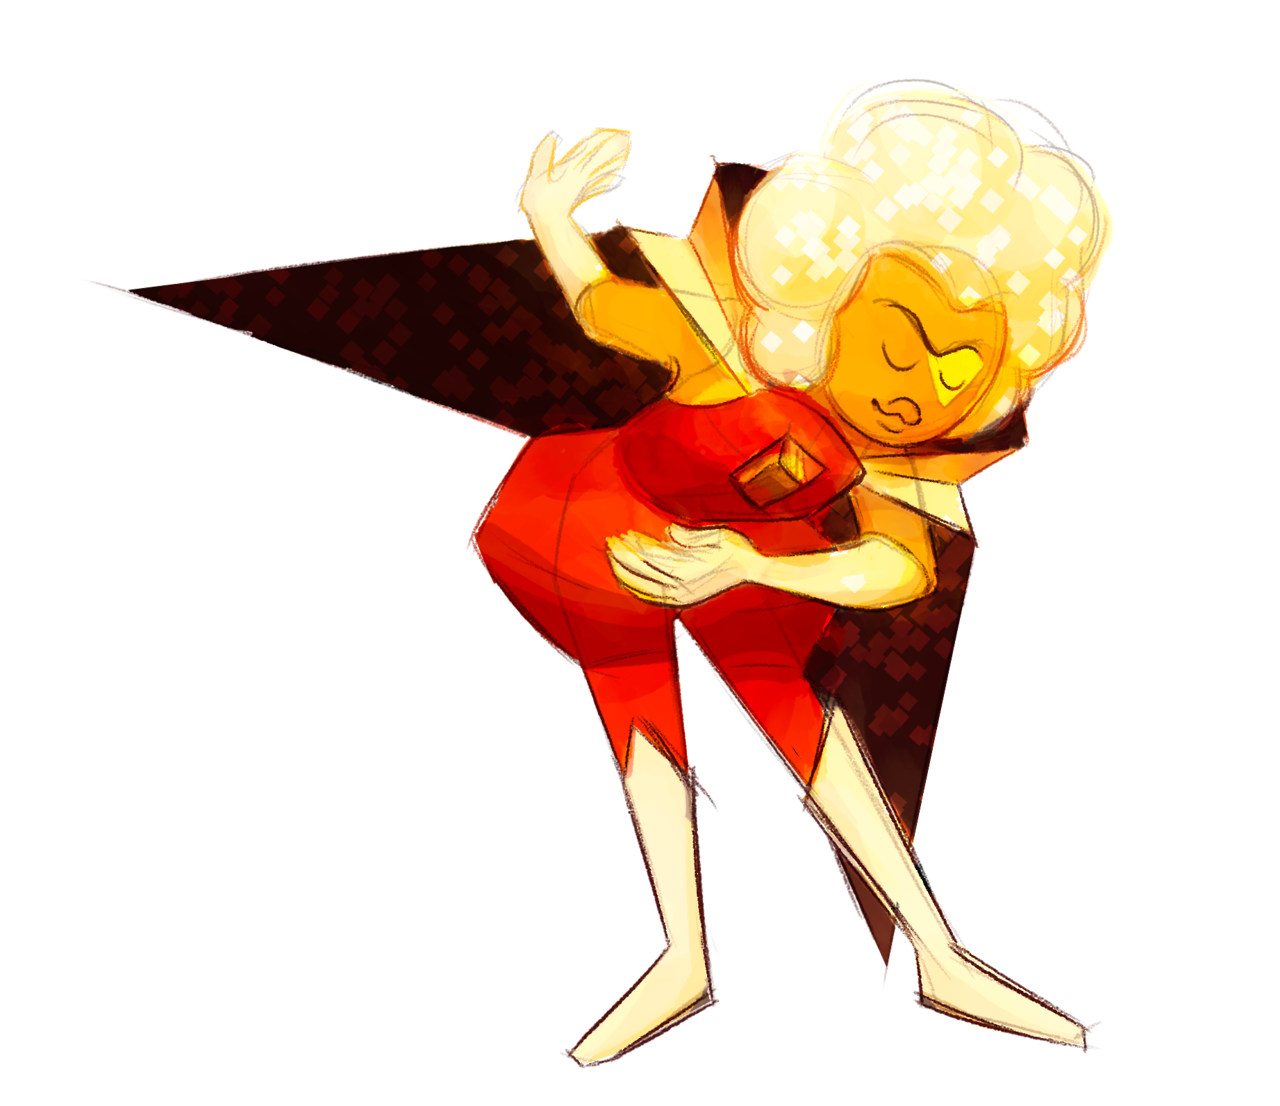 A Hessonite sketch! I haven't played the game but every gif I've seen contains so much of the Dramatic Flair